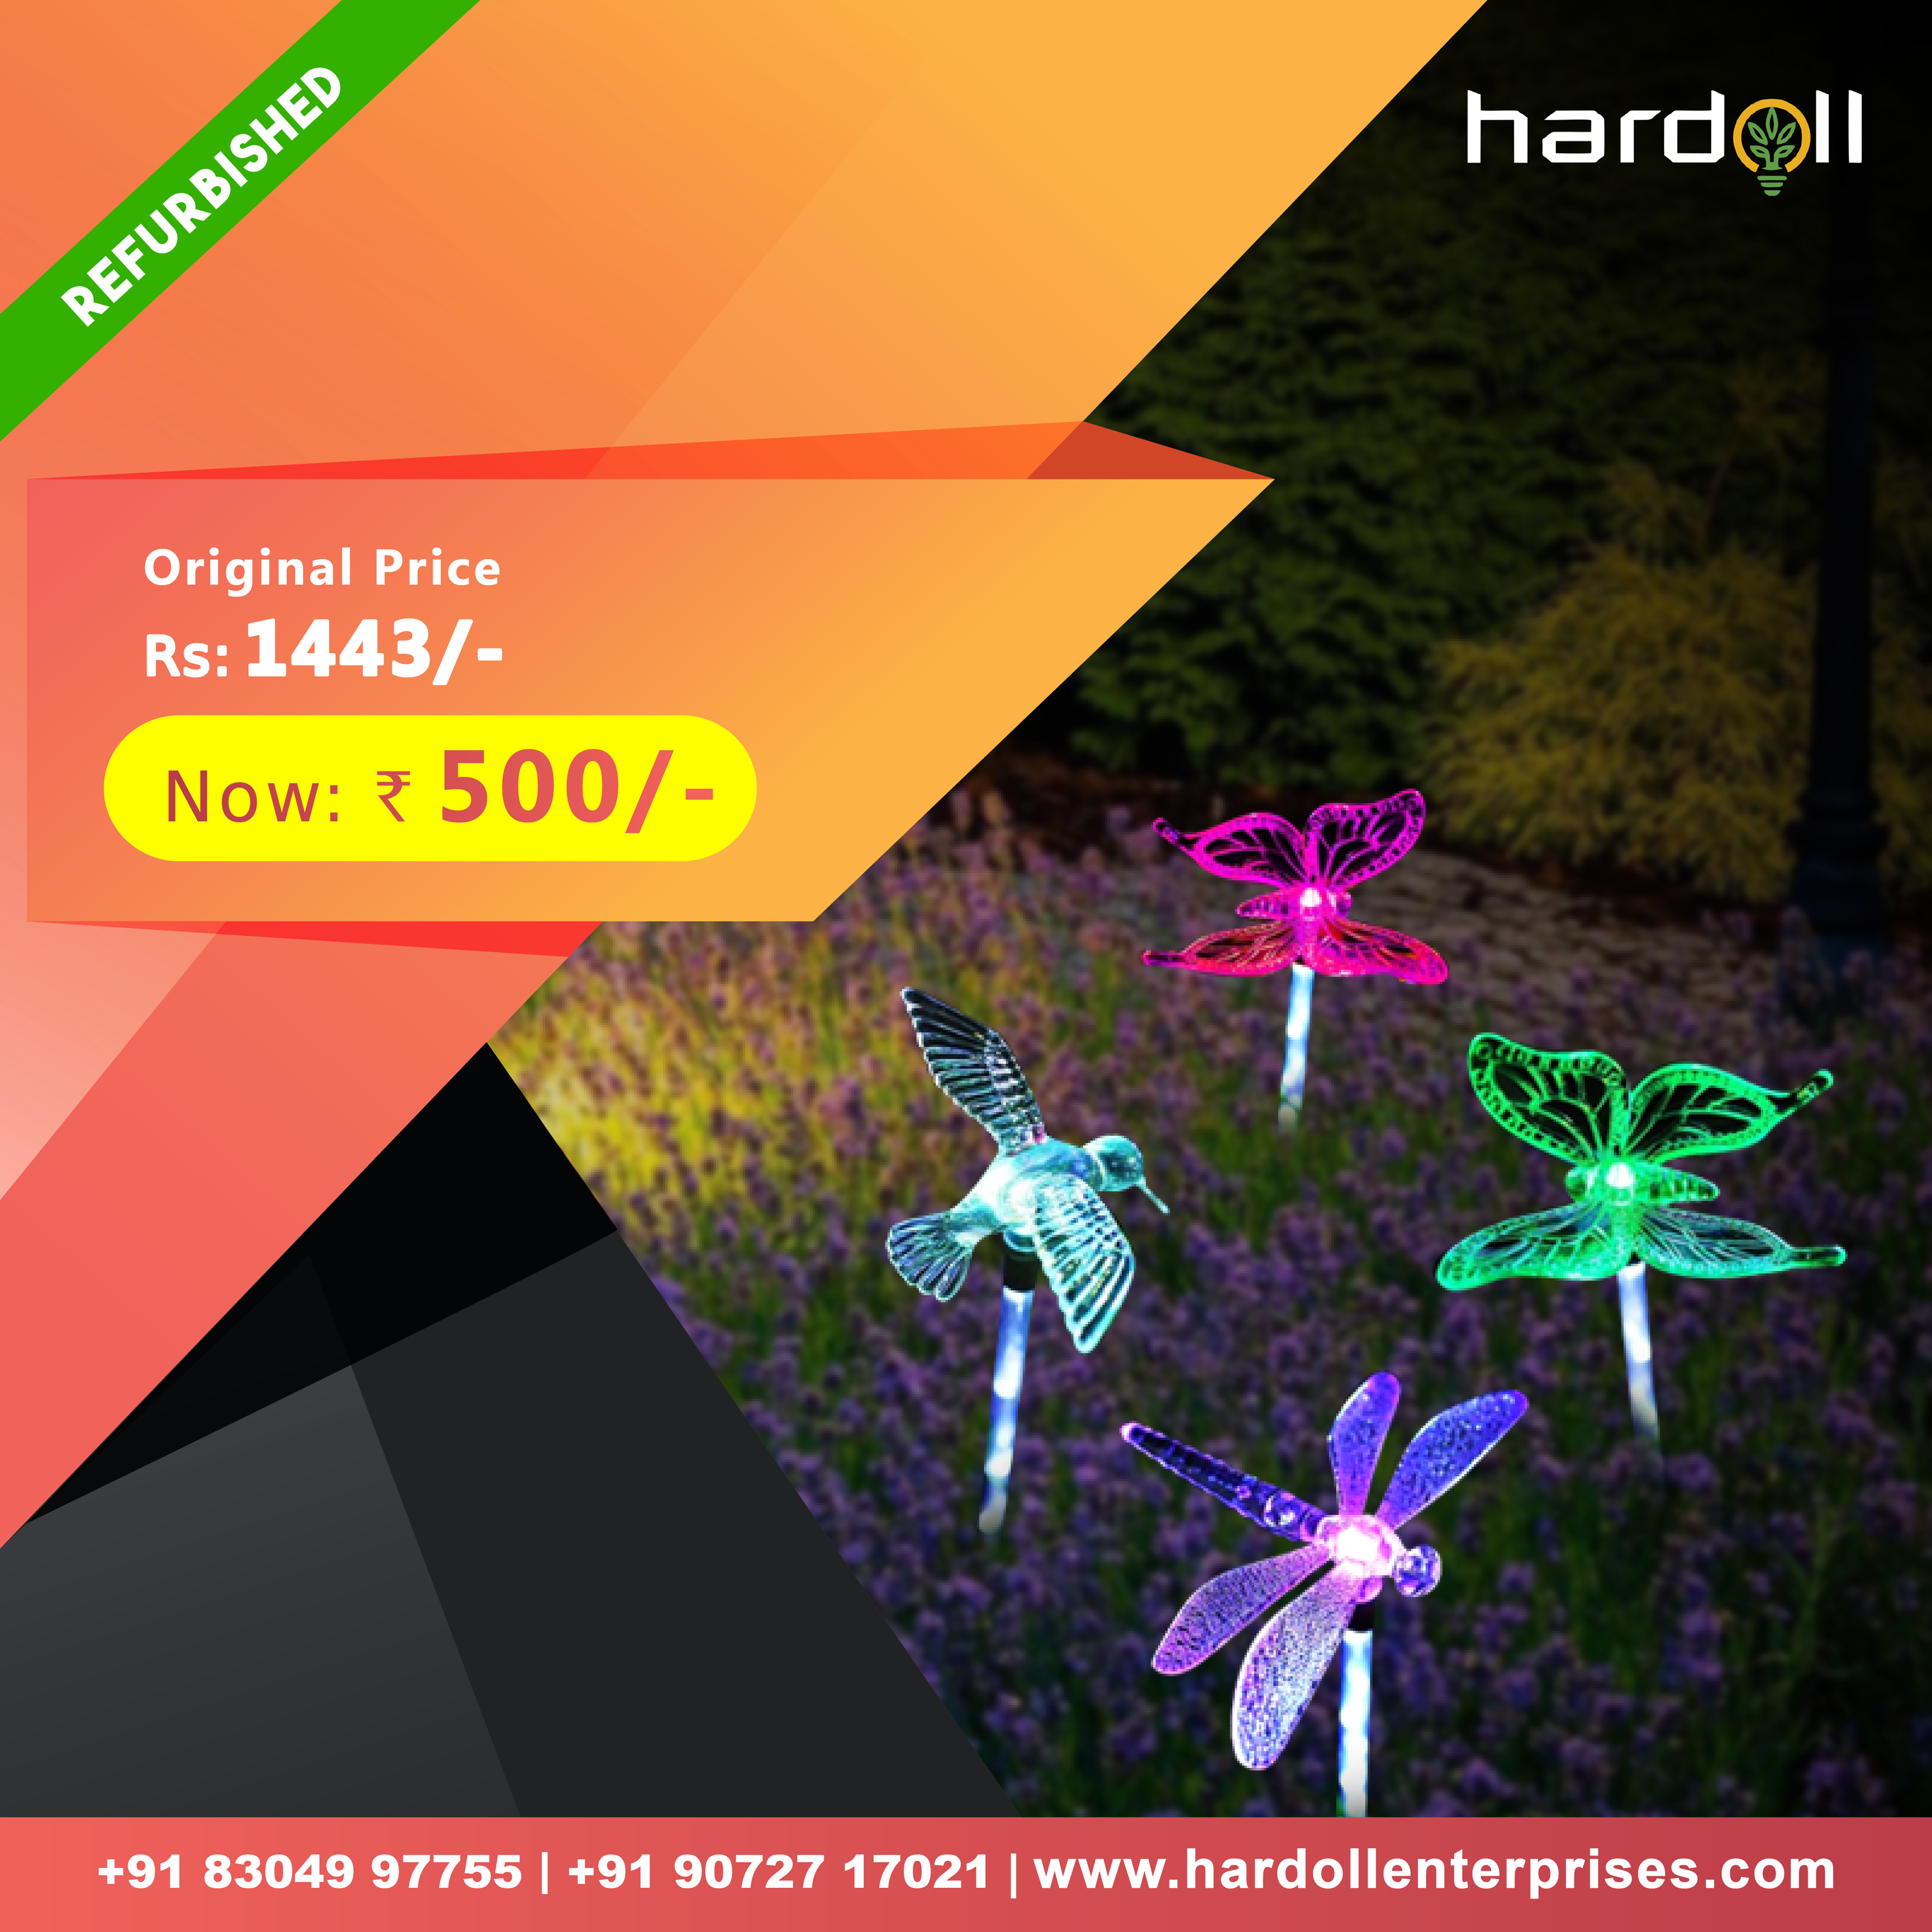 Buy Butterfly, Dragonfly, Hummingbird Garden Decorative Solar Light and Bring Home Nature and Happiness  #GardenDecorativeSolarLights #BestGardenIdeas #DecorativeSolarLightsforGarden #BestGardenIdeas #BestSolarDecorativeOutdoorLights #SolarLightsforGarden #BestSolarLightsforGarden #HardollSolarLights #HowtoDecorateGarden #HowtoDecorateBalcony #BuySolarLightsforOutdoorOnline